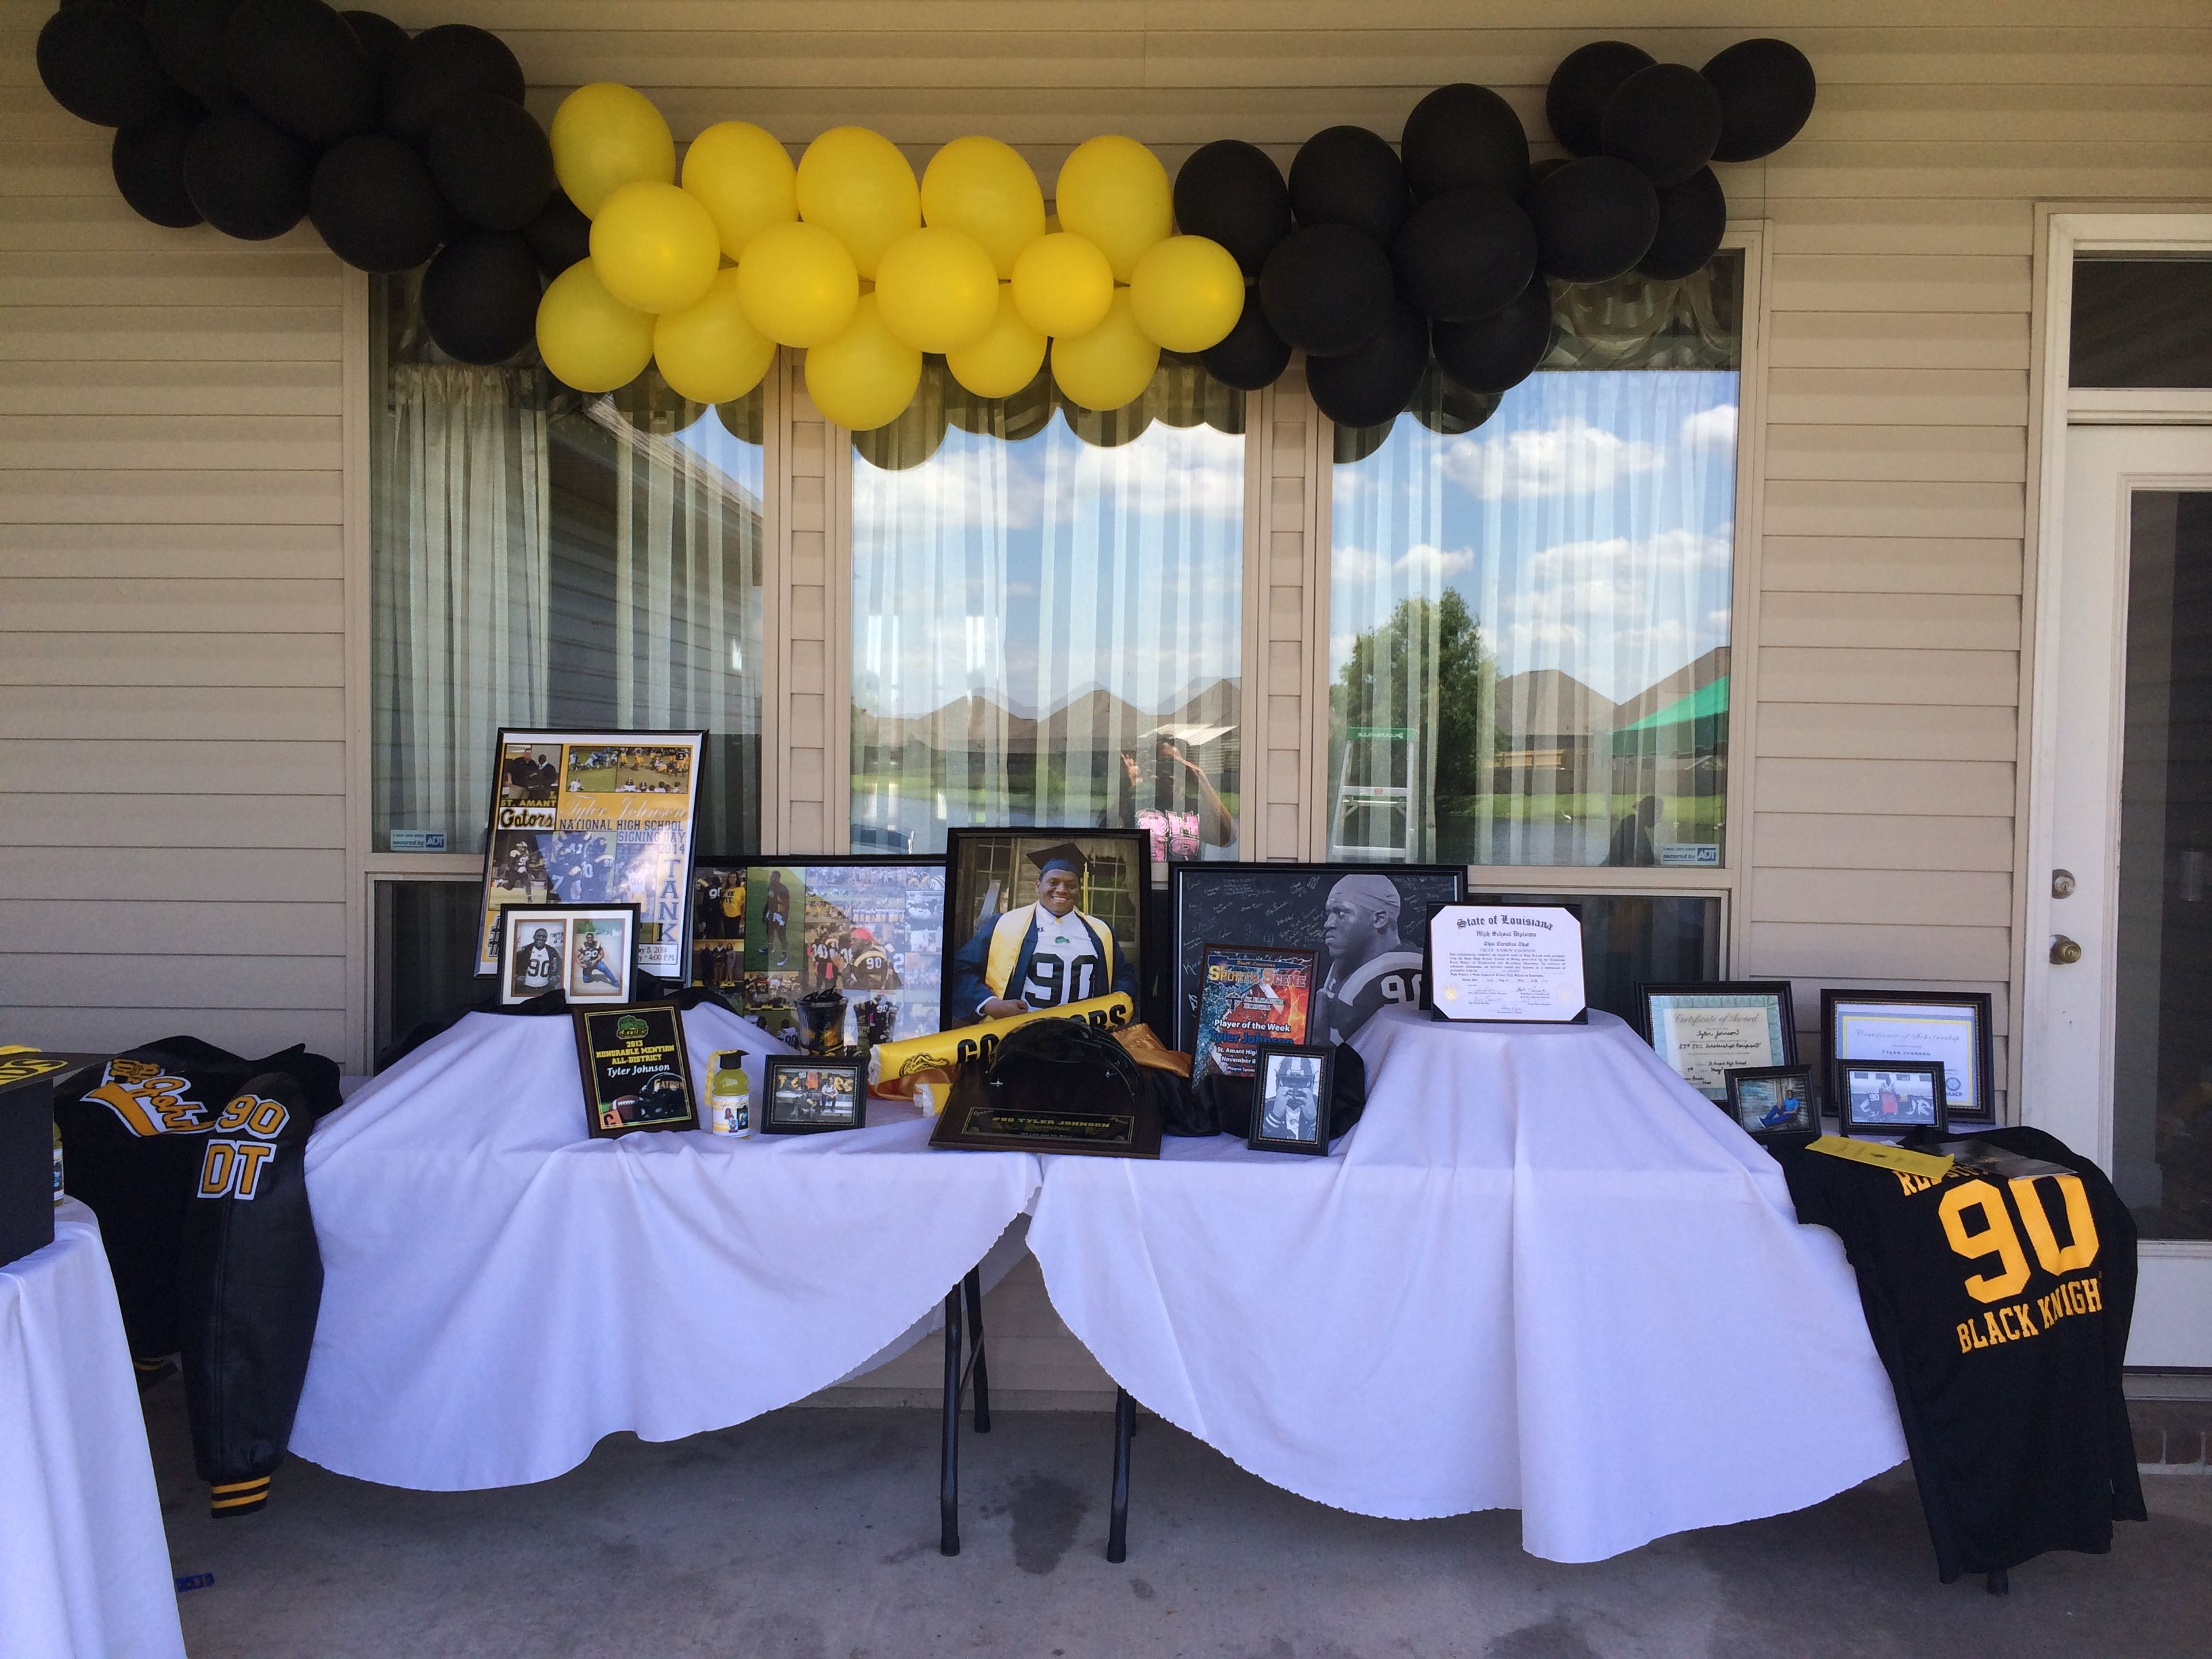 Graduation Display Table Include Awards Scholarships Diploma Pictures Letterman Jacket